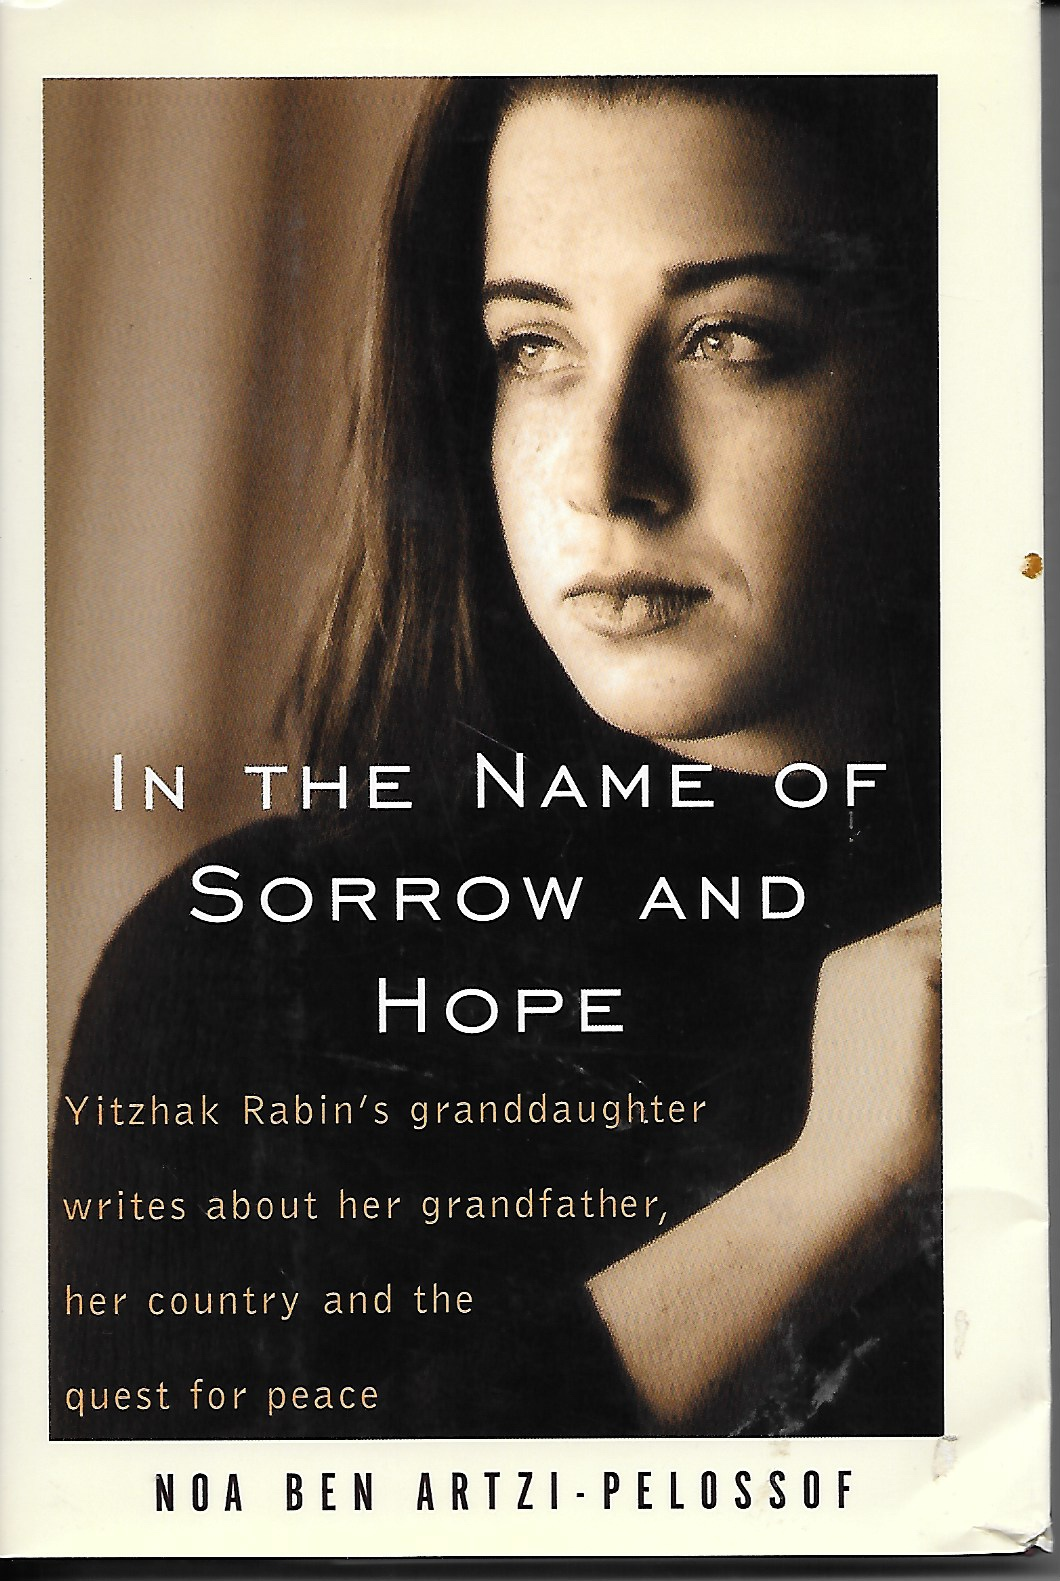 Image for In The Name Of Sorrow And Hope Yitzhak Rabi's Granddaugher Writes about Her Grandfather, Her Country and the Quest for Peace